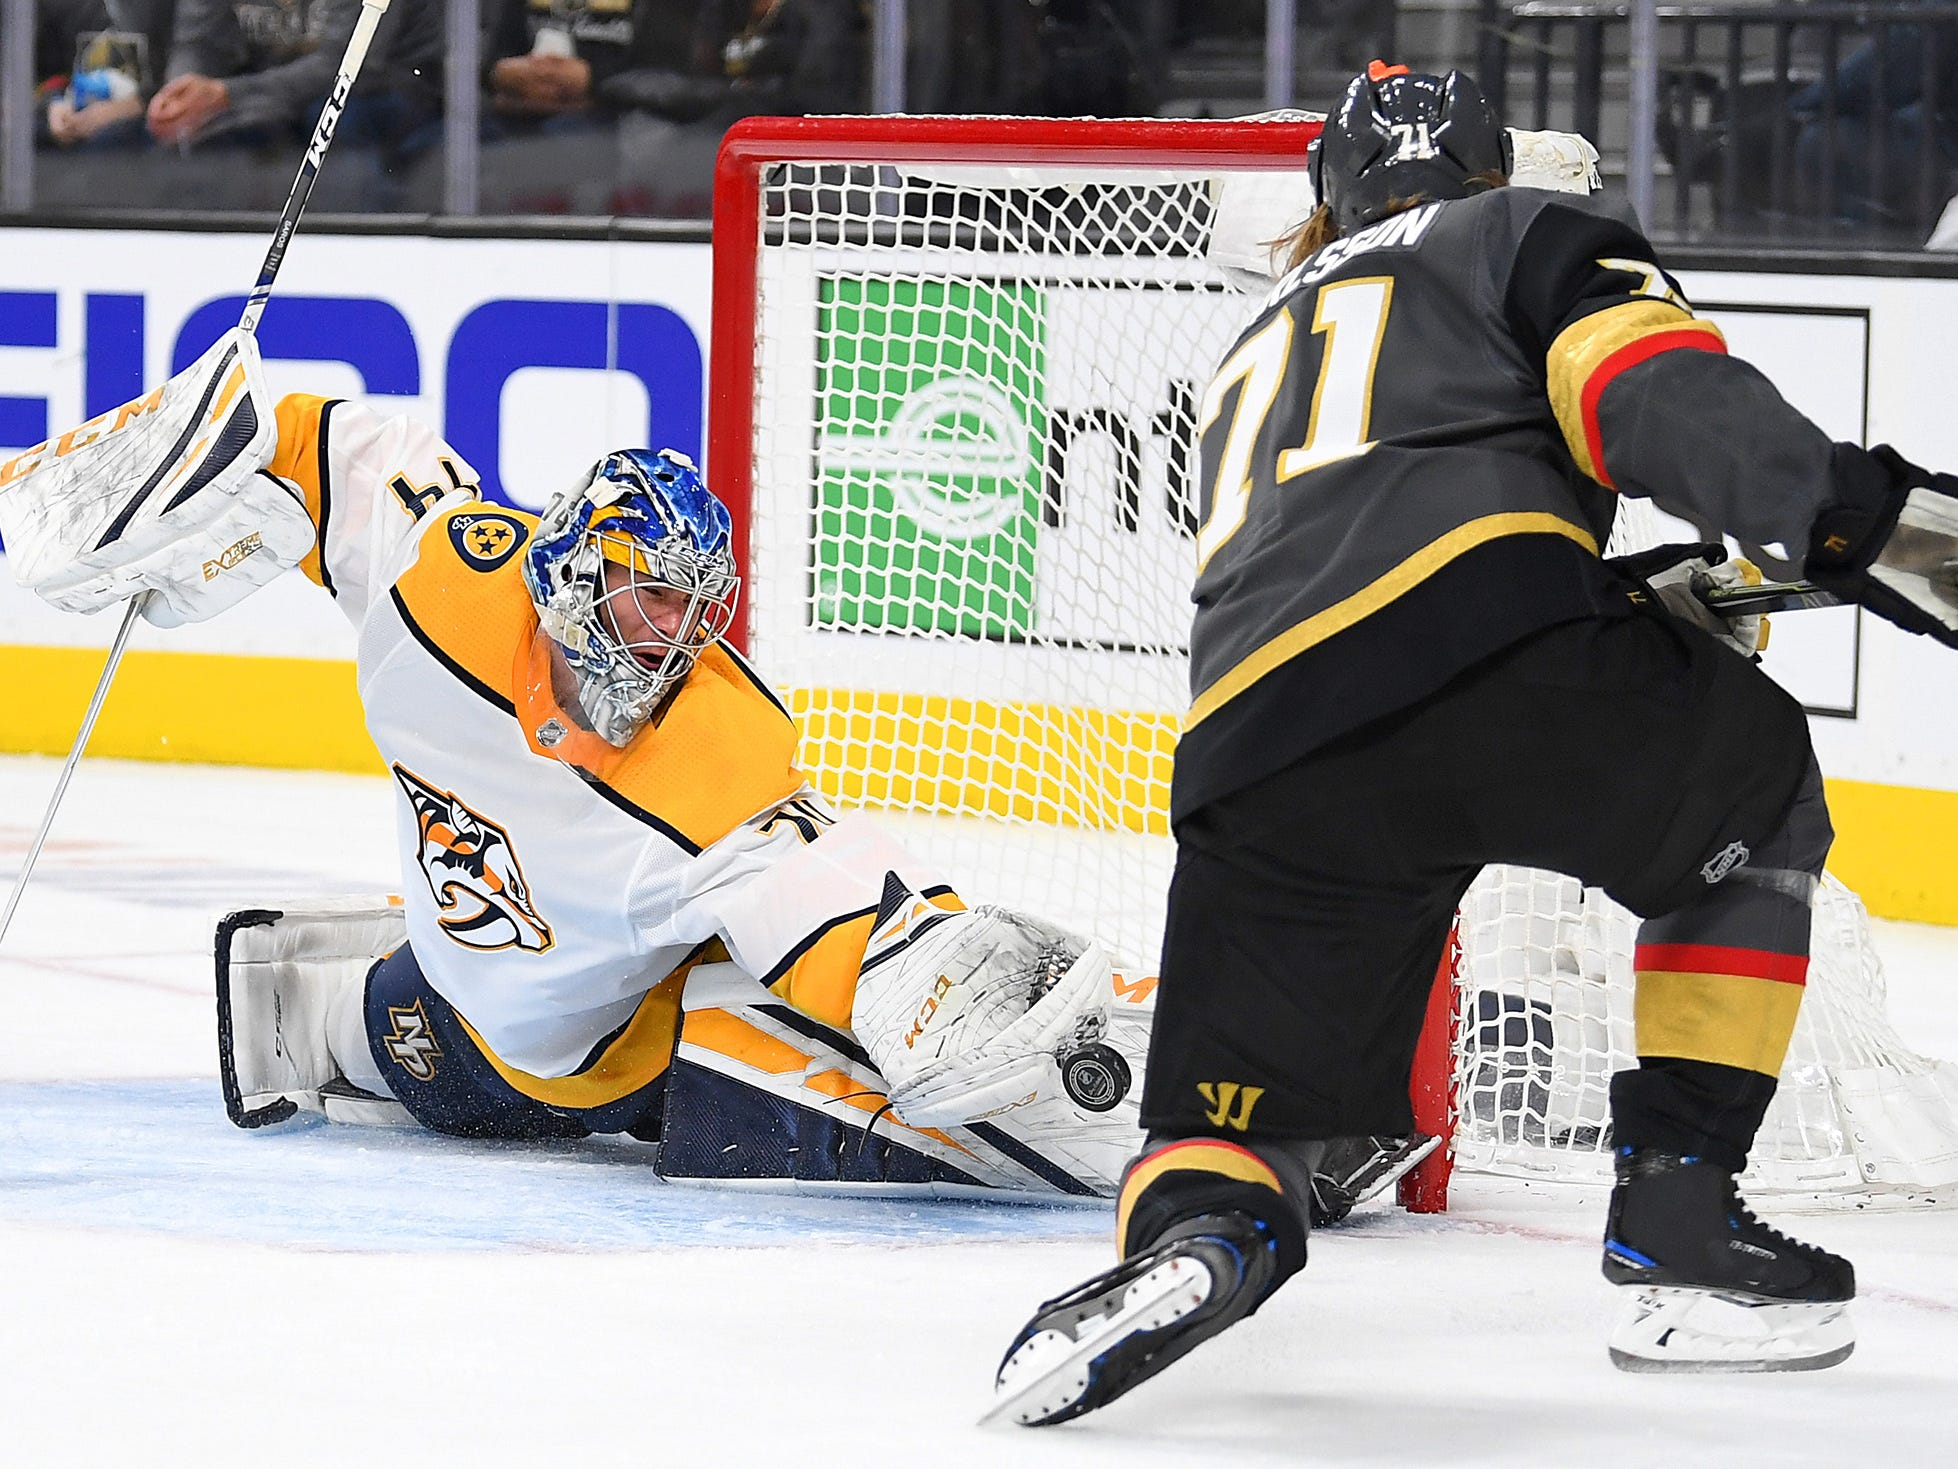 Nashville Predators goaltender Juuse Saros (74) makes a save on a second period shot by Vegas Golden Knights center William Karlsson (71) at T-Mobile Arena.